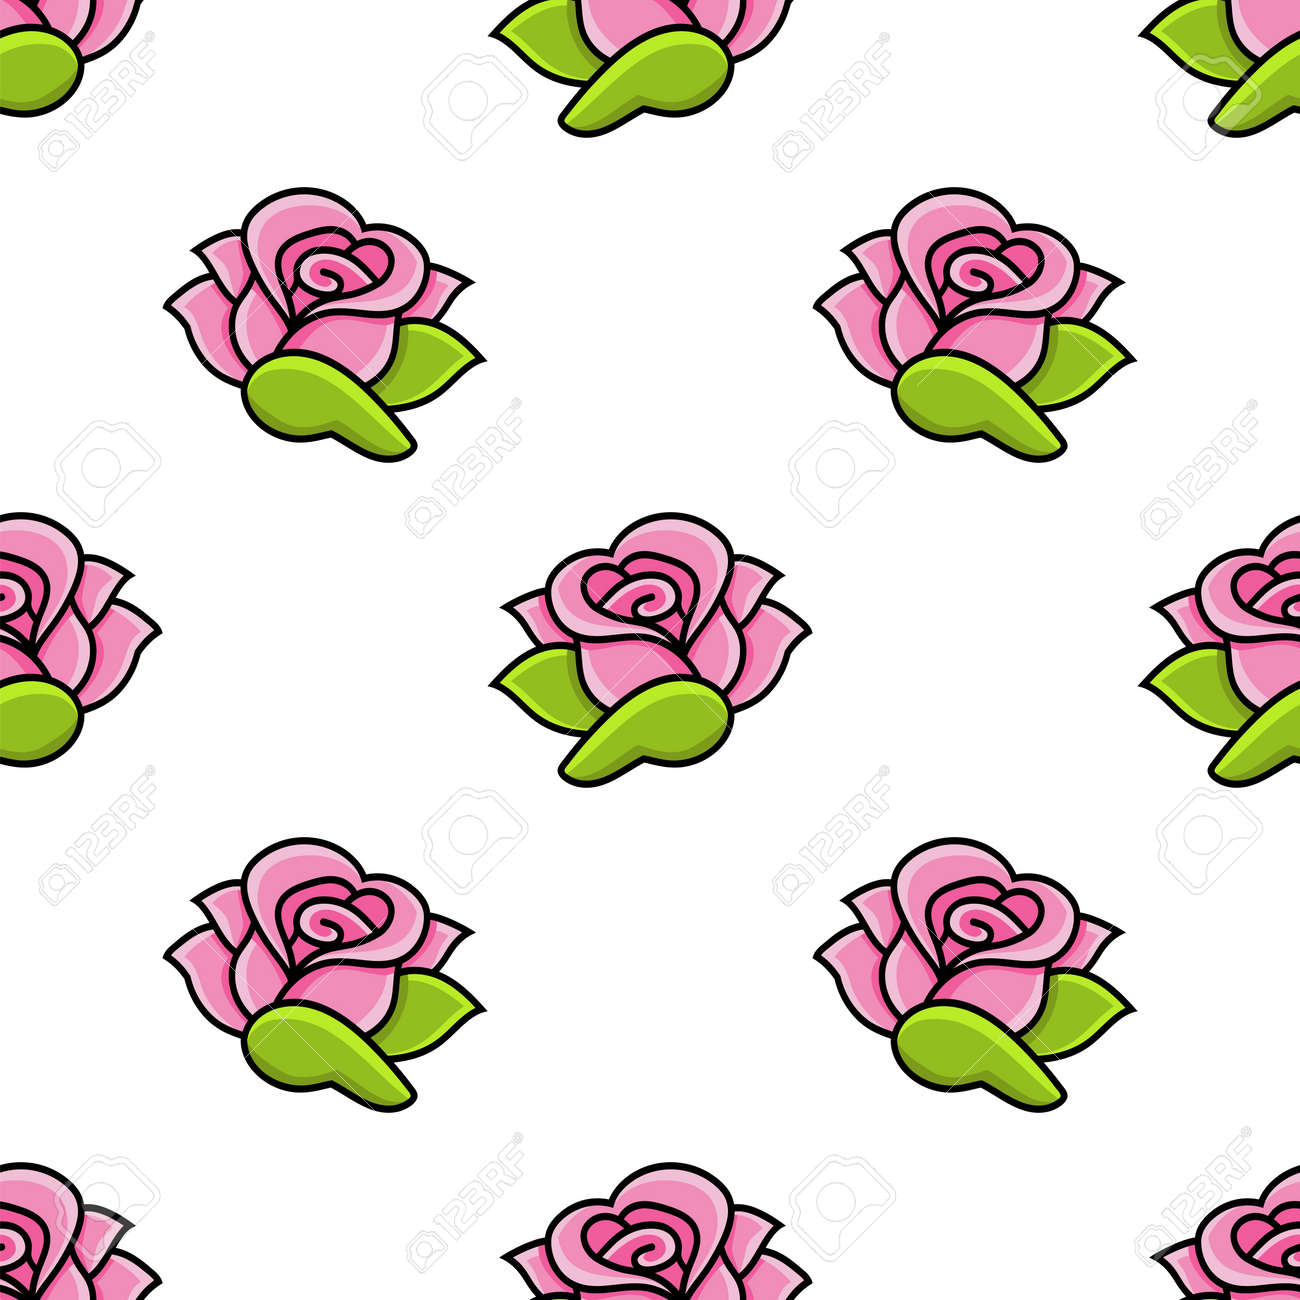 Colored seamless pattern. Cartoon style. Hand drawn. Vector illustration isolated on white background. For walpaper, poster, banner. - 169599912